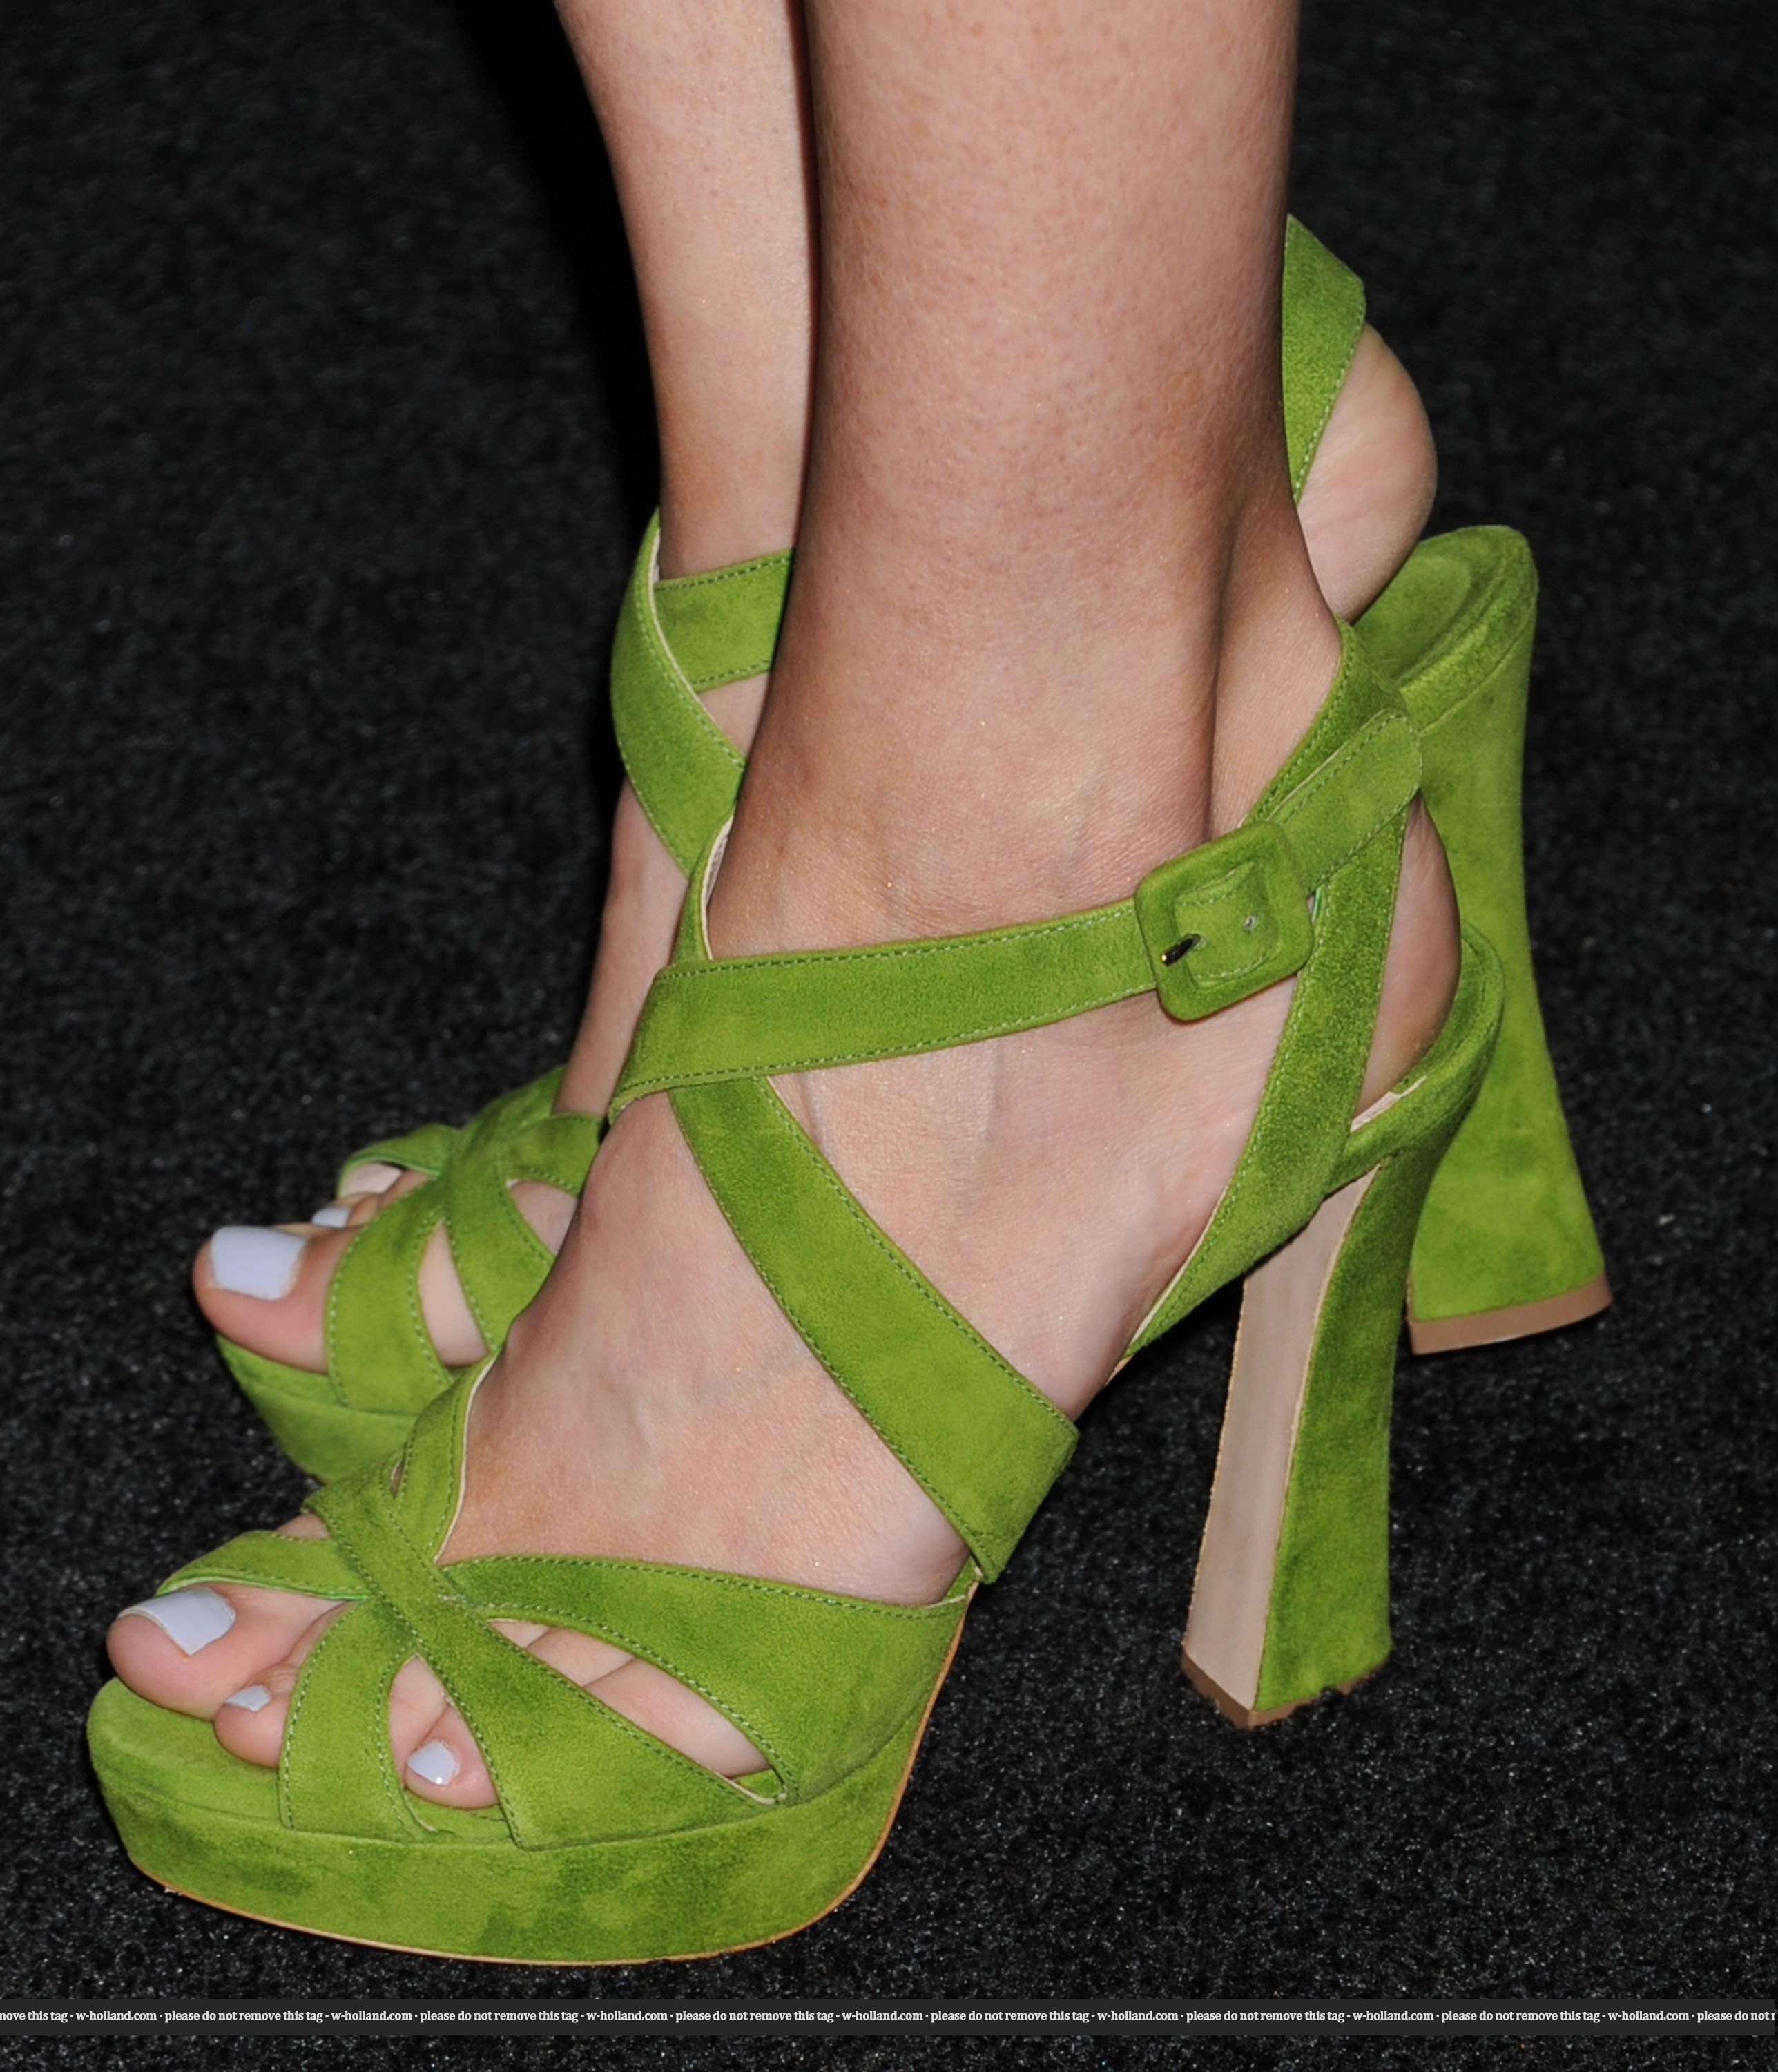 willa holland feet